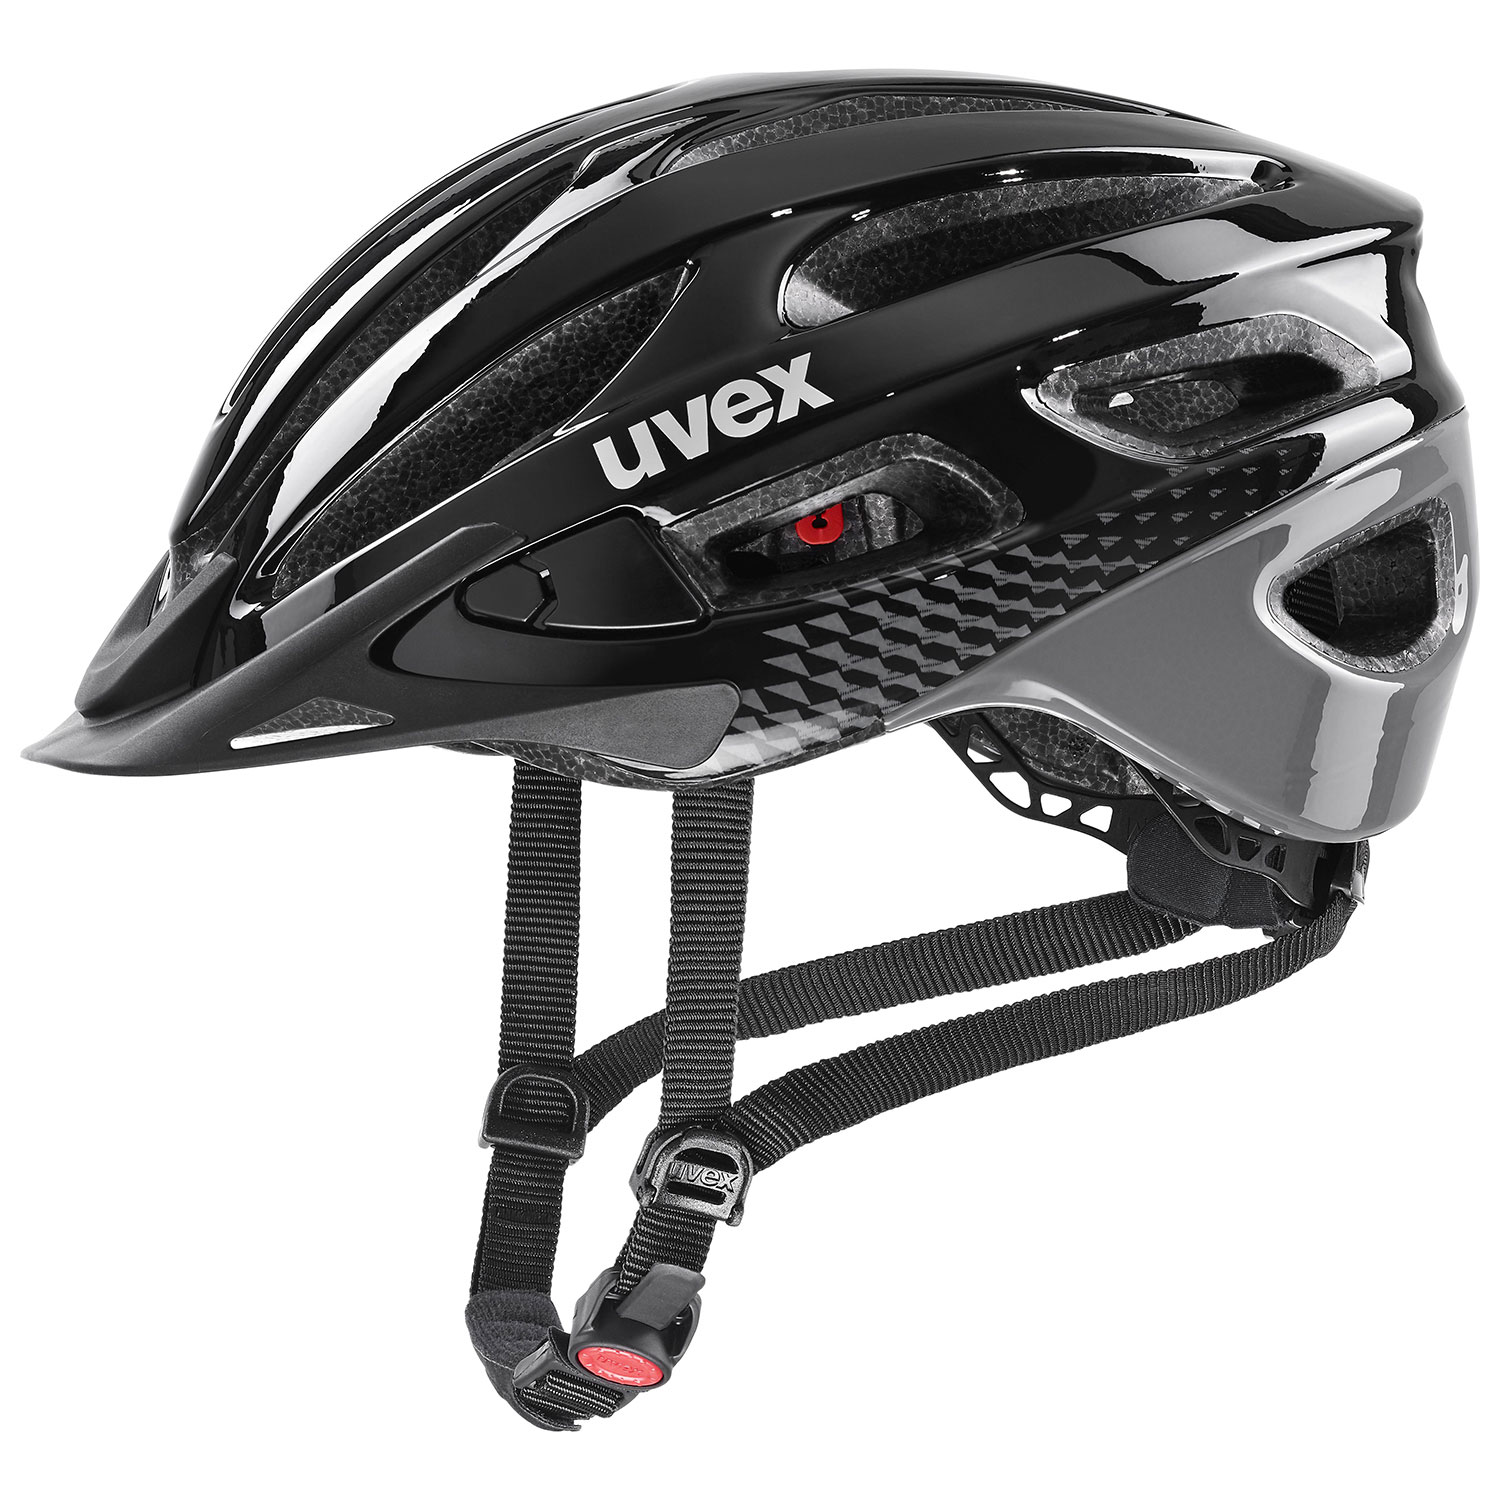 2021 UVEX HELMA TRUE, BLACK - GREY 52-55